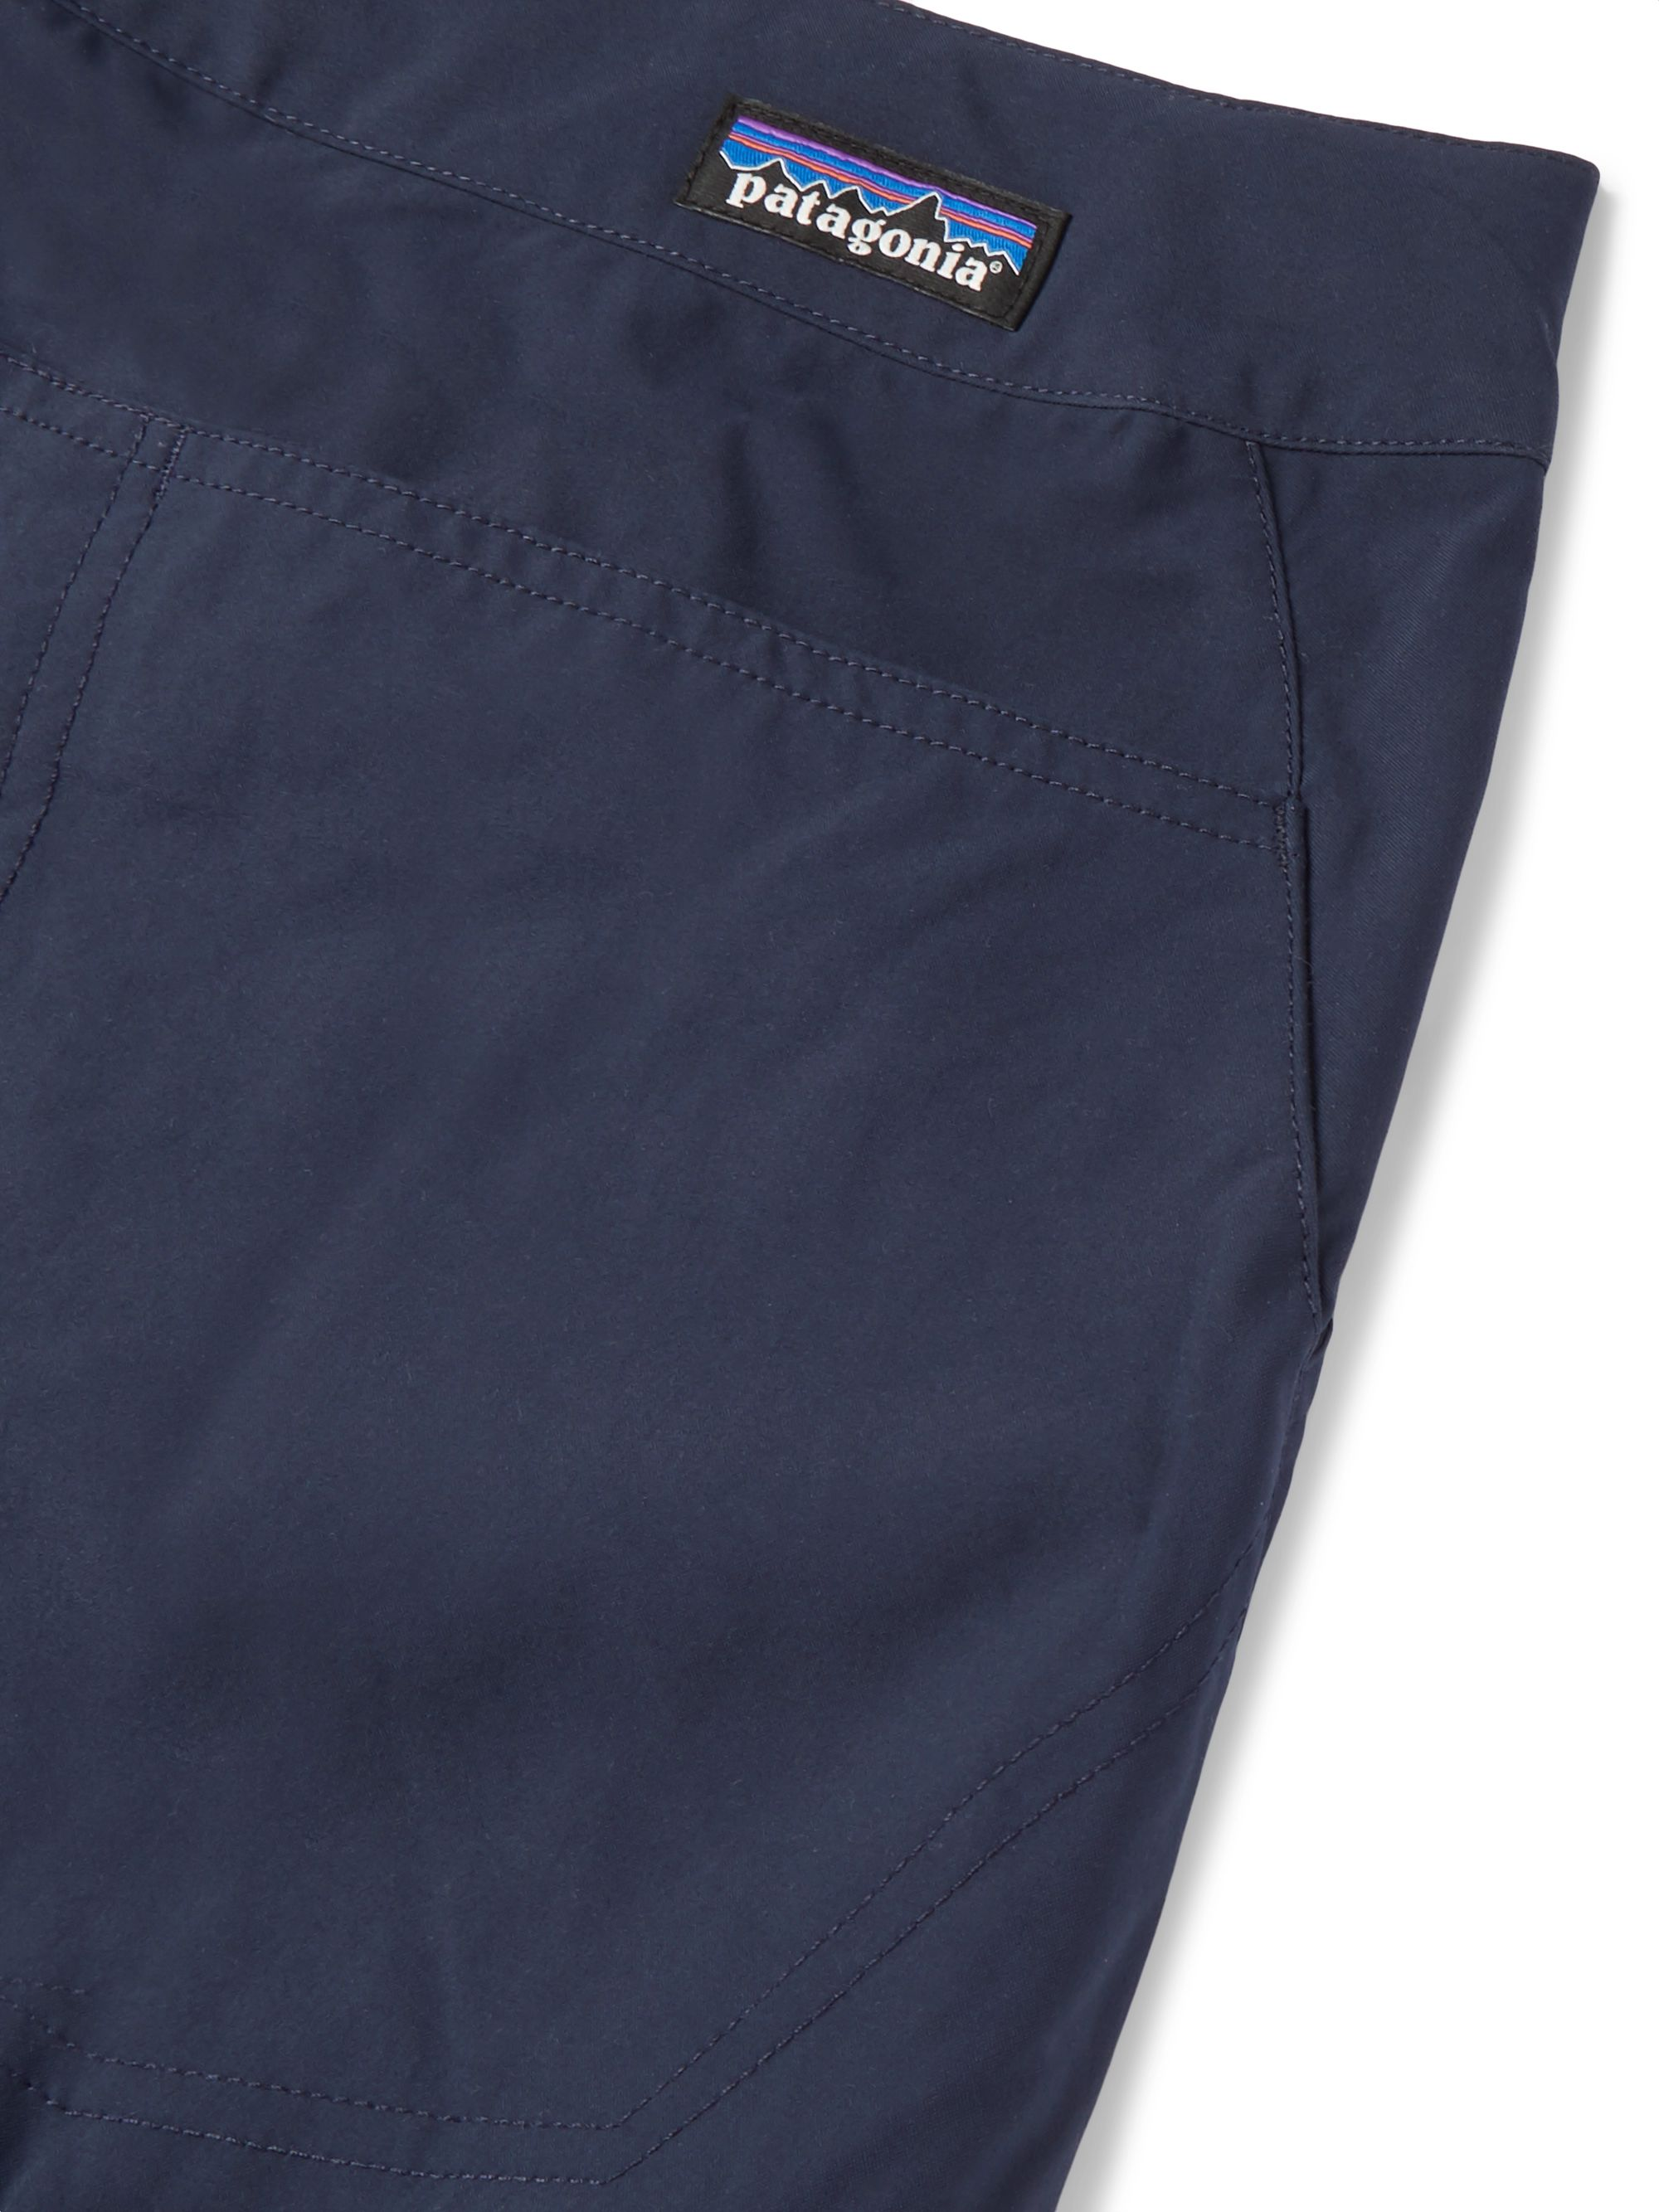 Patagonia RPS Rock Shell Trousers